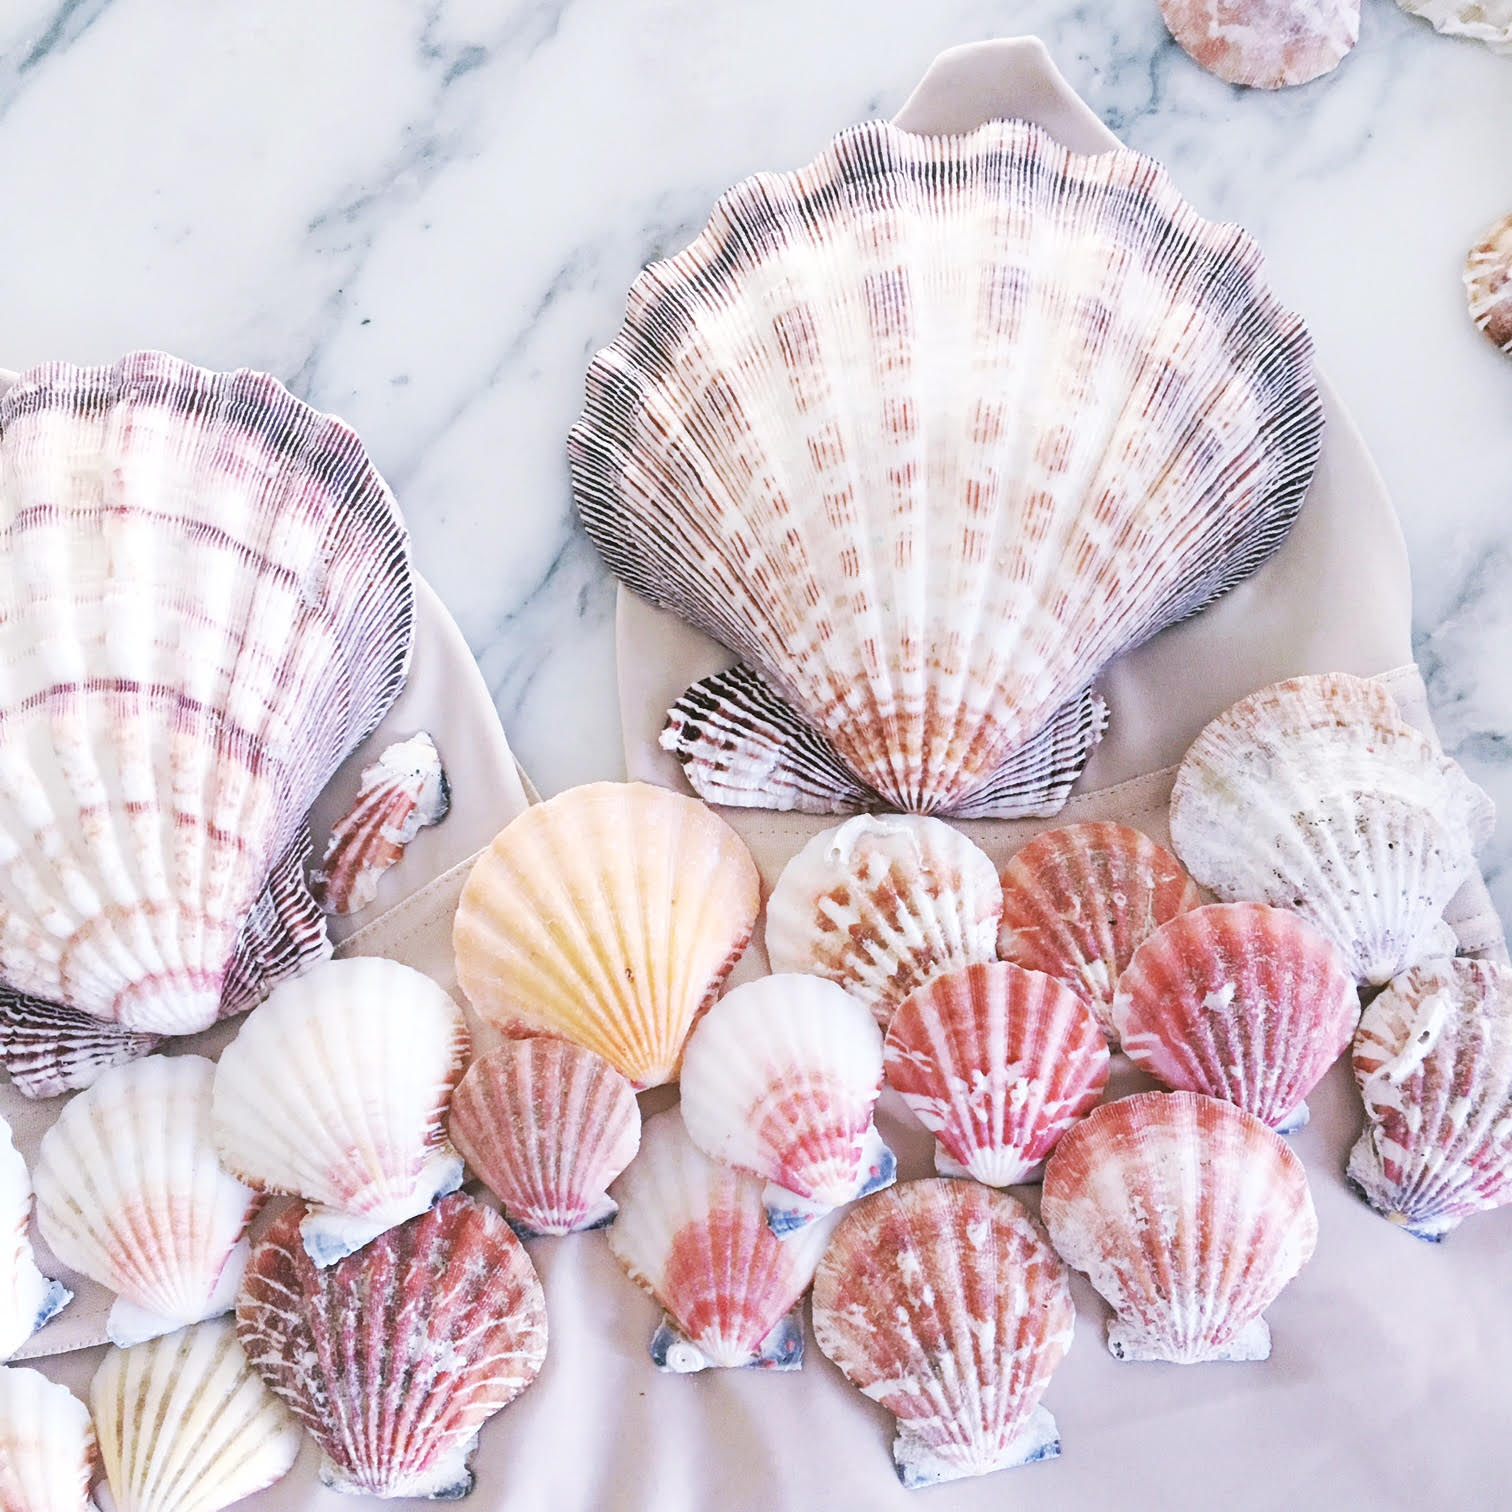 We found these amazing pink shells that we loved.